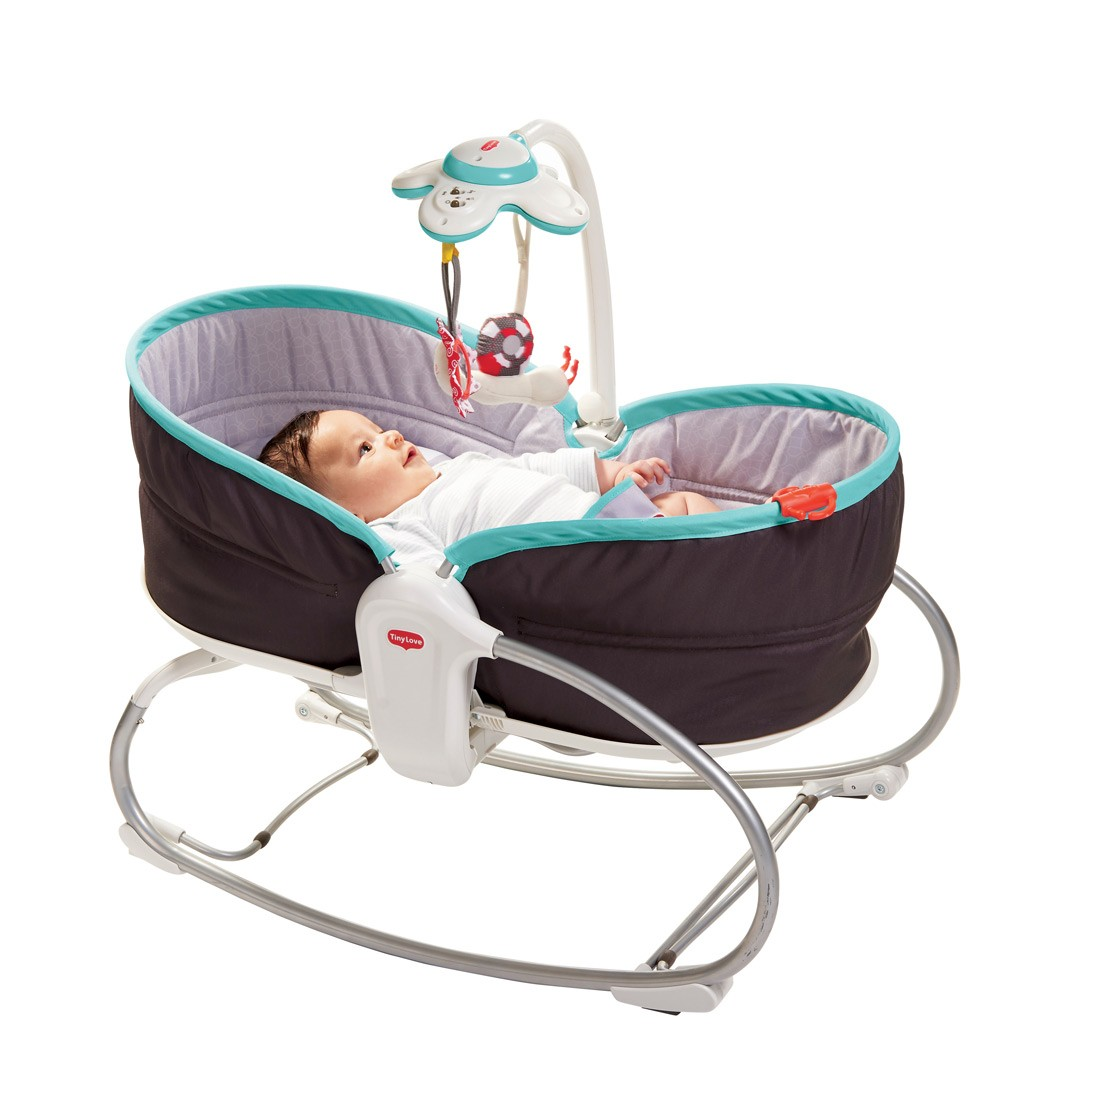 Tiny Love 3 in 1 Rocking Vibrating Bouncy Chair/Moses basket 0-18kgs Turq